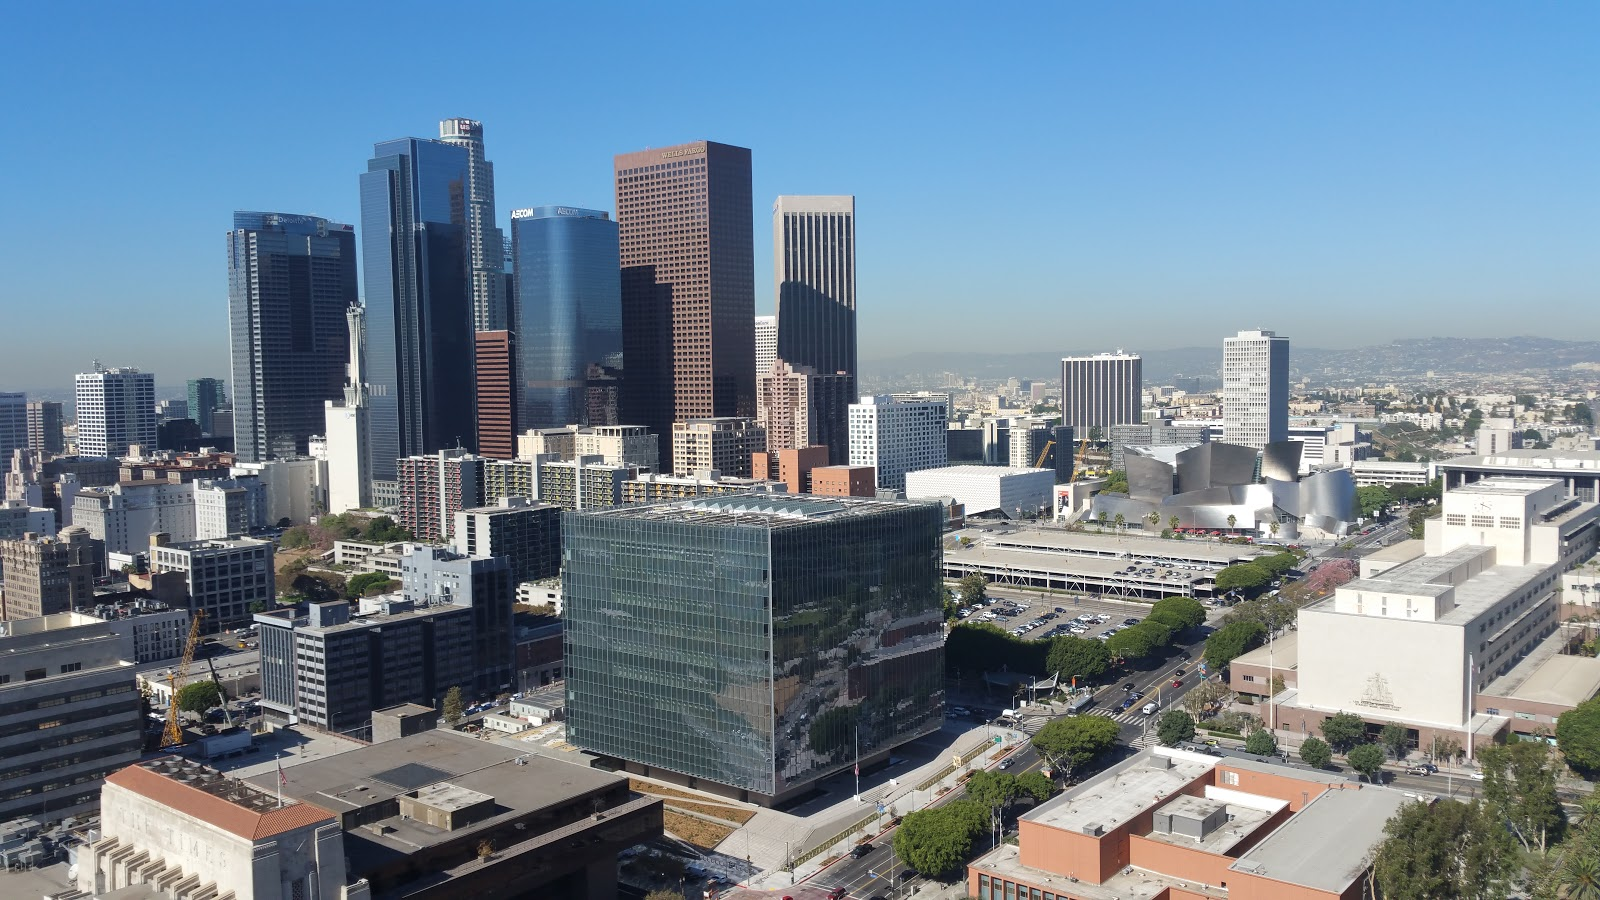 Several large skyscrapers from Los Angeles